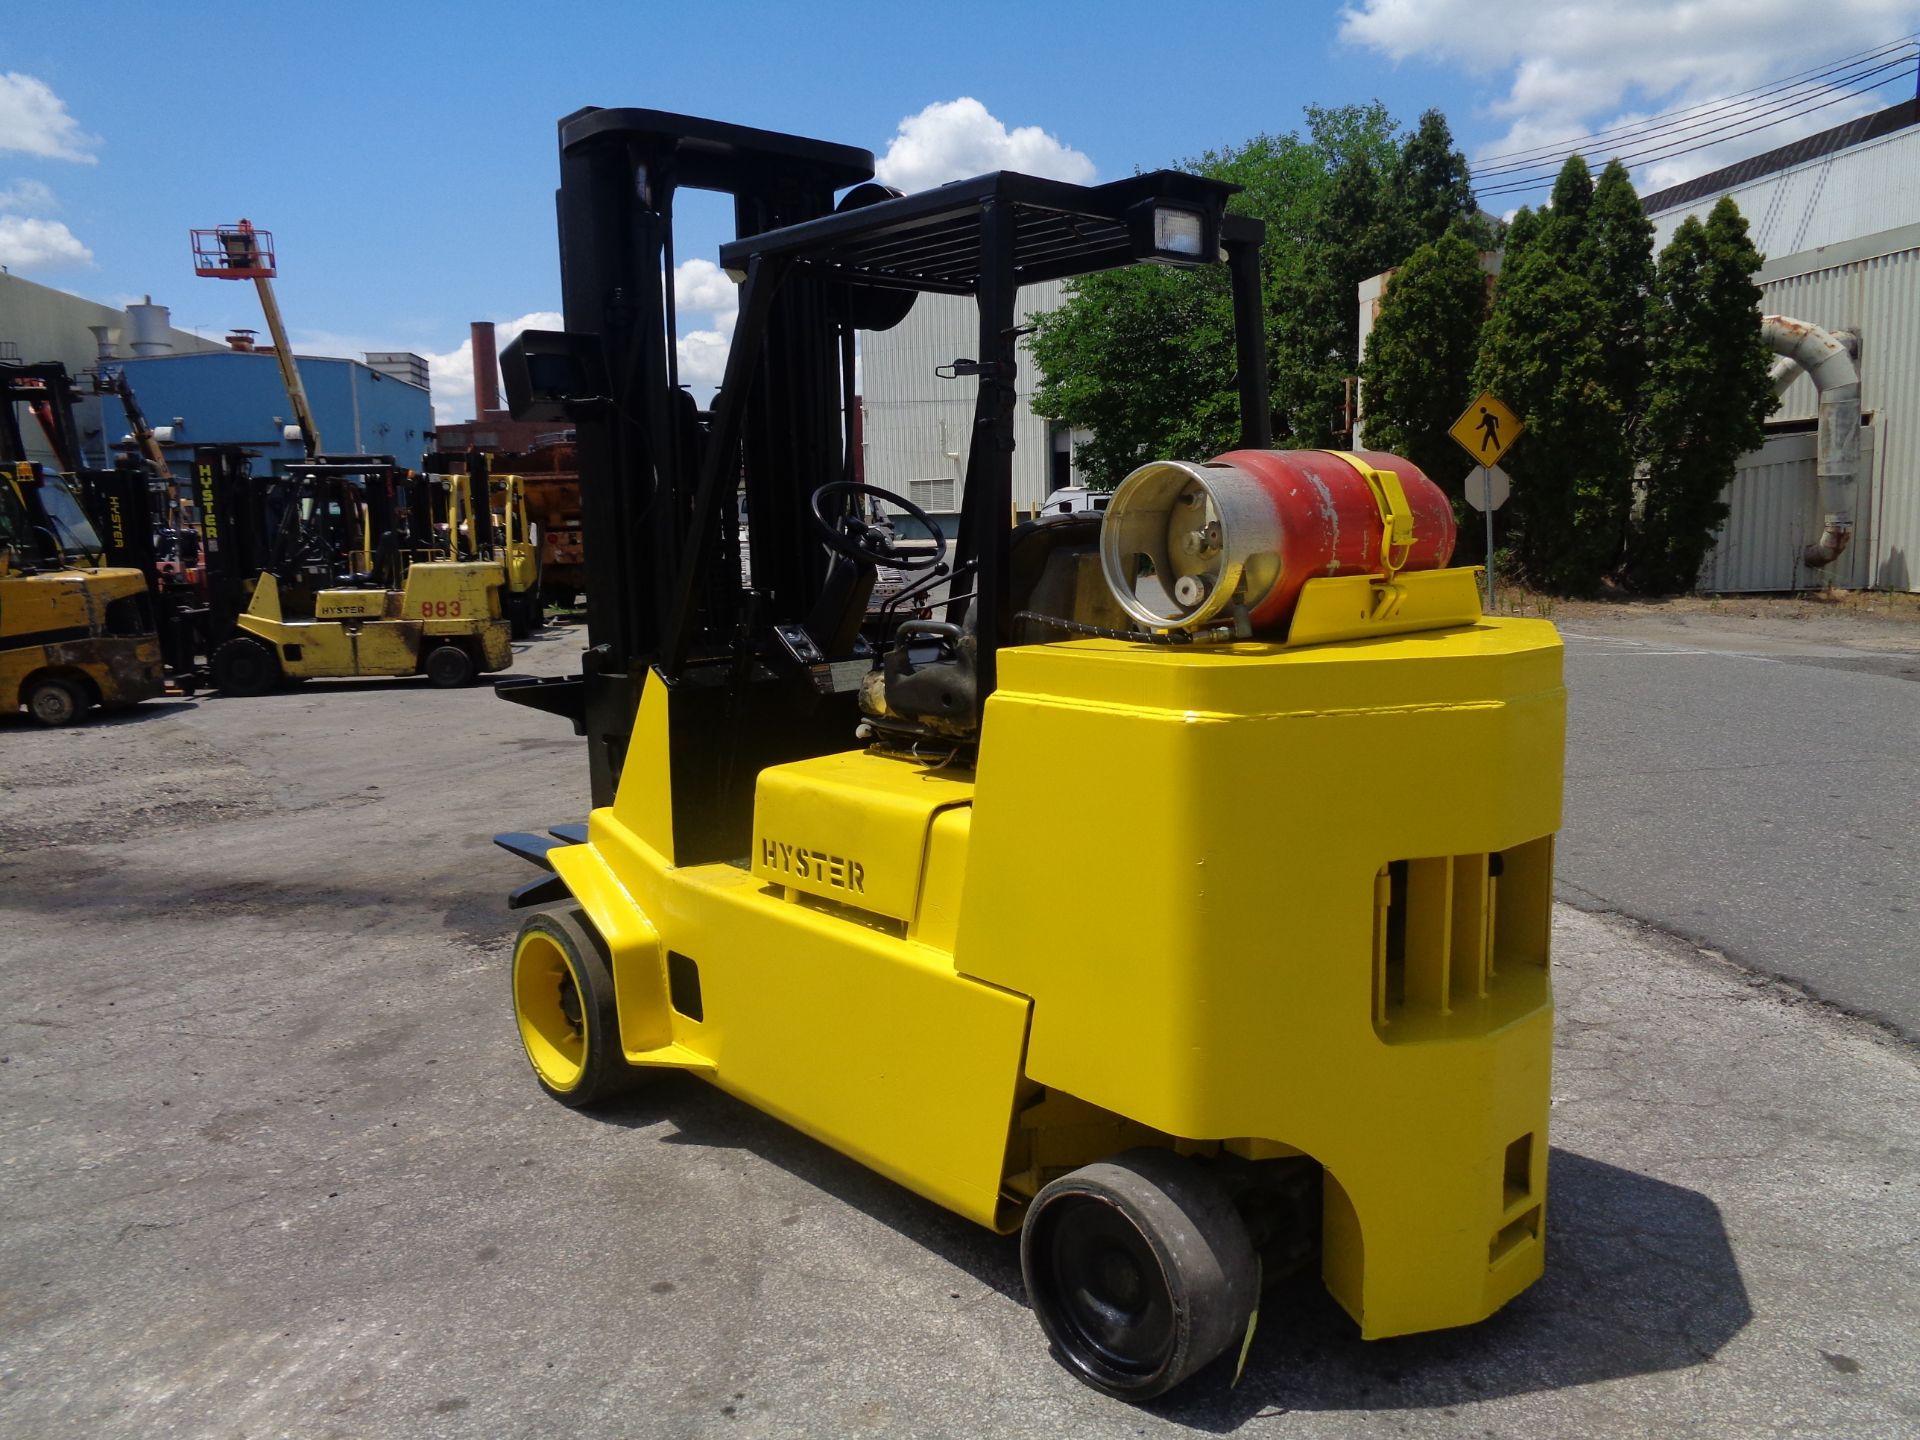 Hyster S120XL 12,000lb Forklift - Image 7 of 14